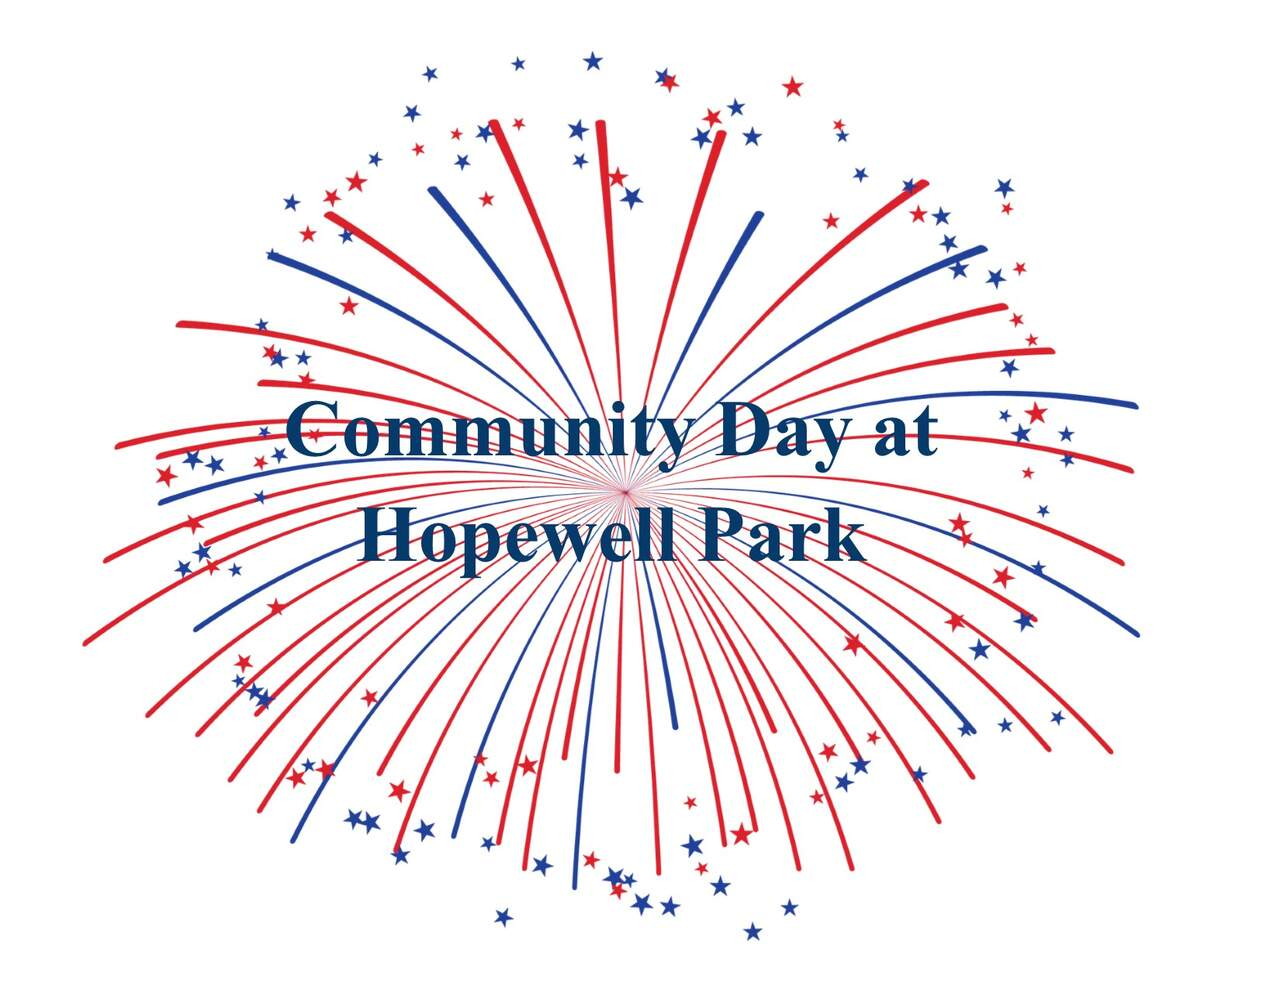 Hopewell Community Park - Community Day